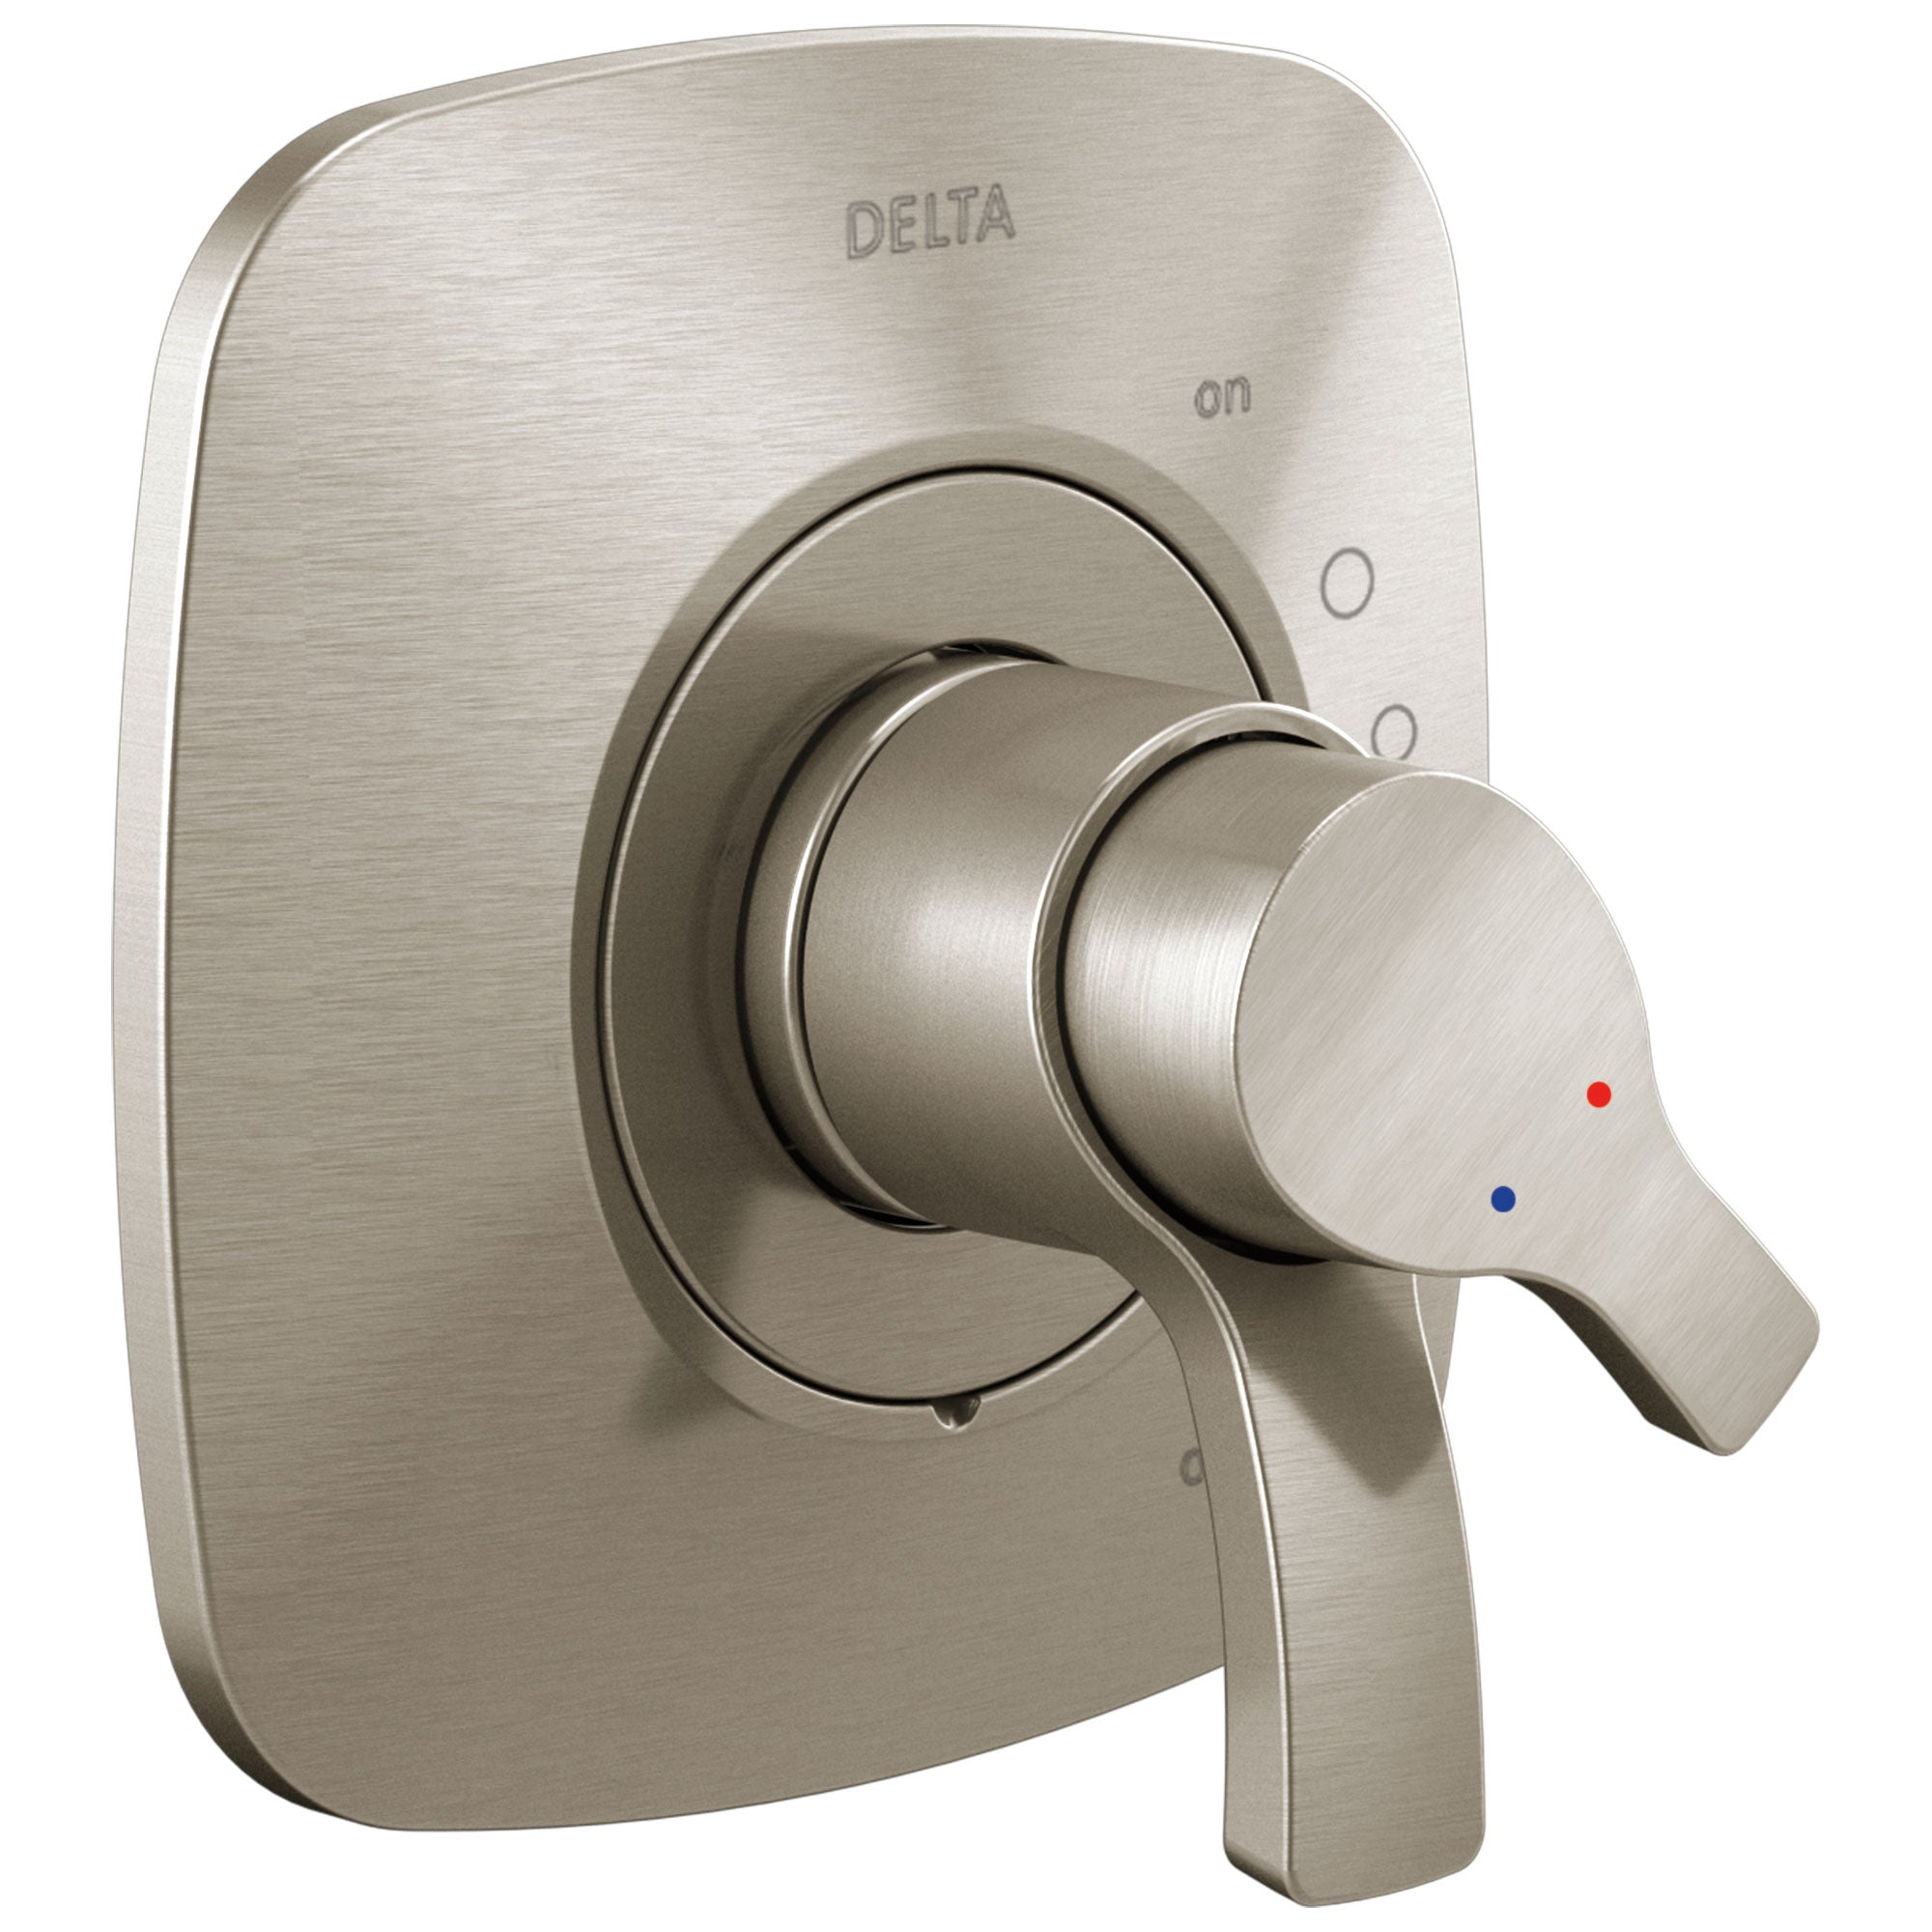 Delta Tesla Stainless Steel Finish Monitor 17 Dual Temperature and Water Pressure Shower Faucet Control Handle Includes Trim Kit and Valve without Stops D1978V